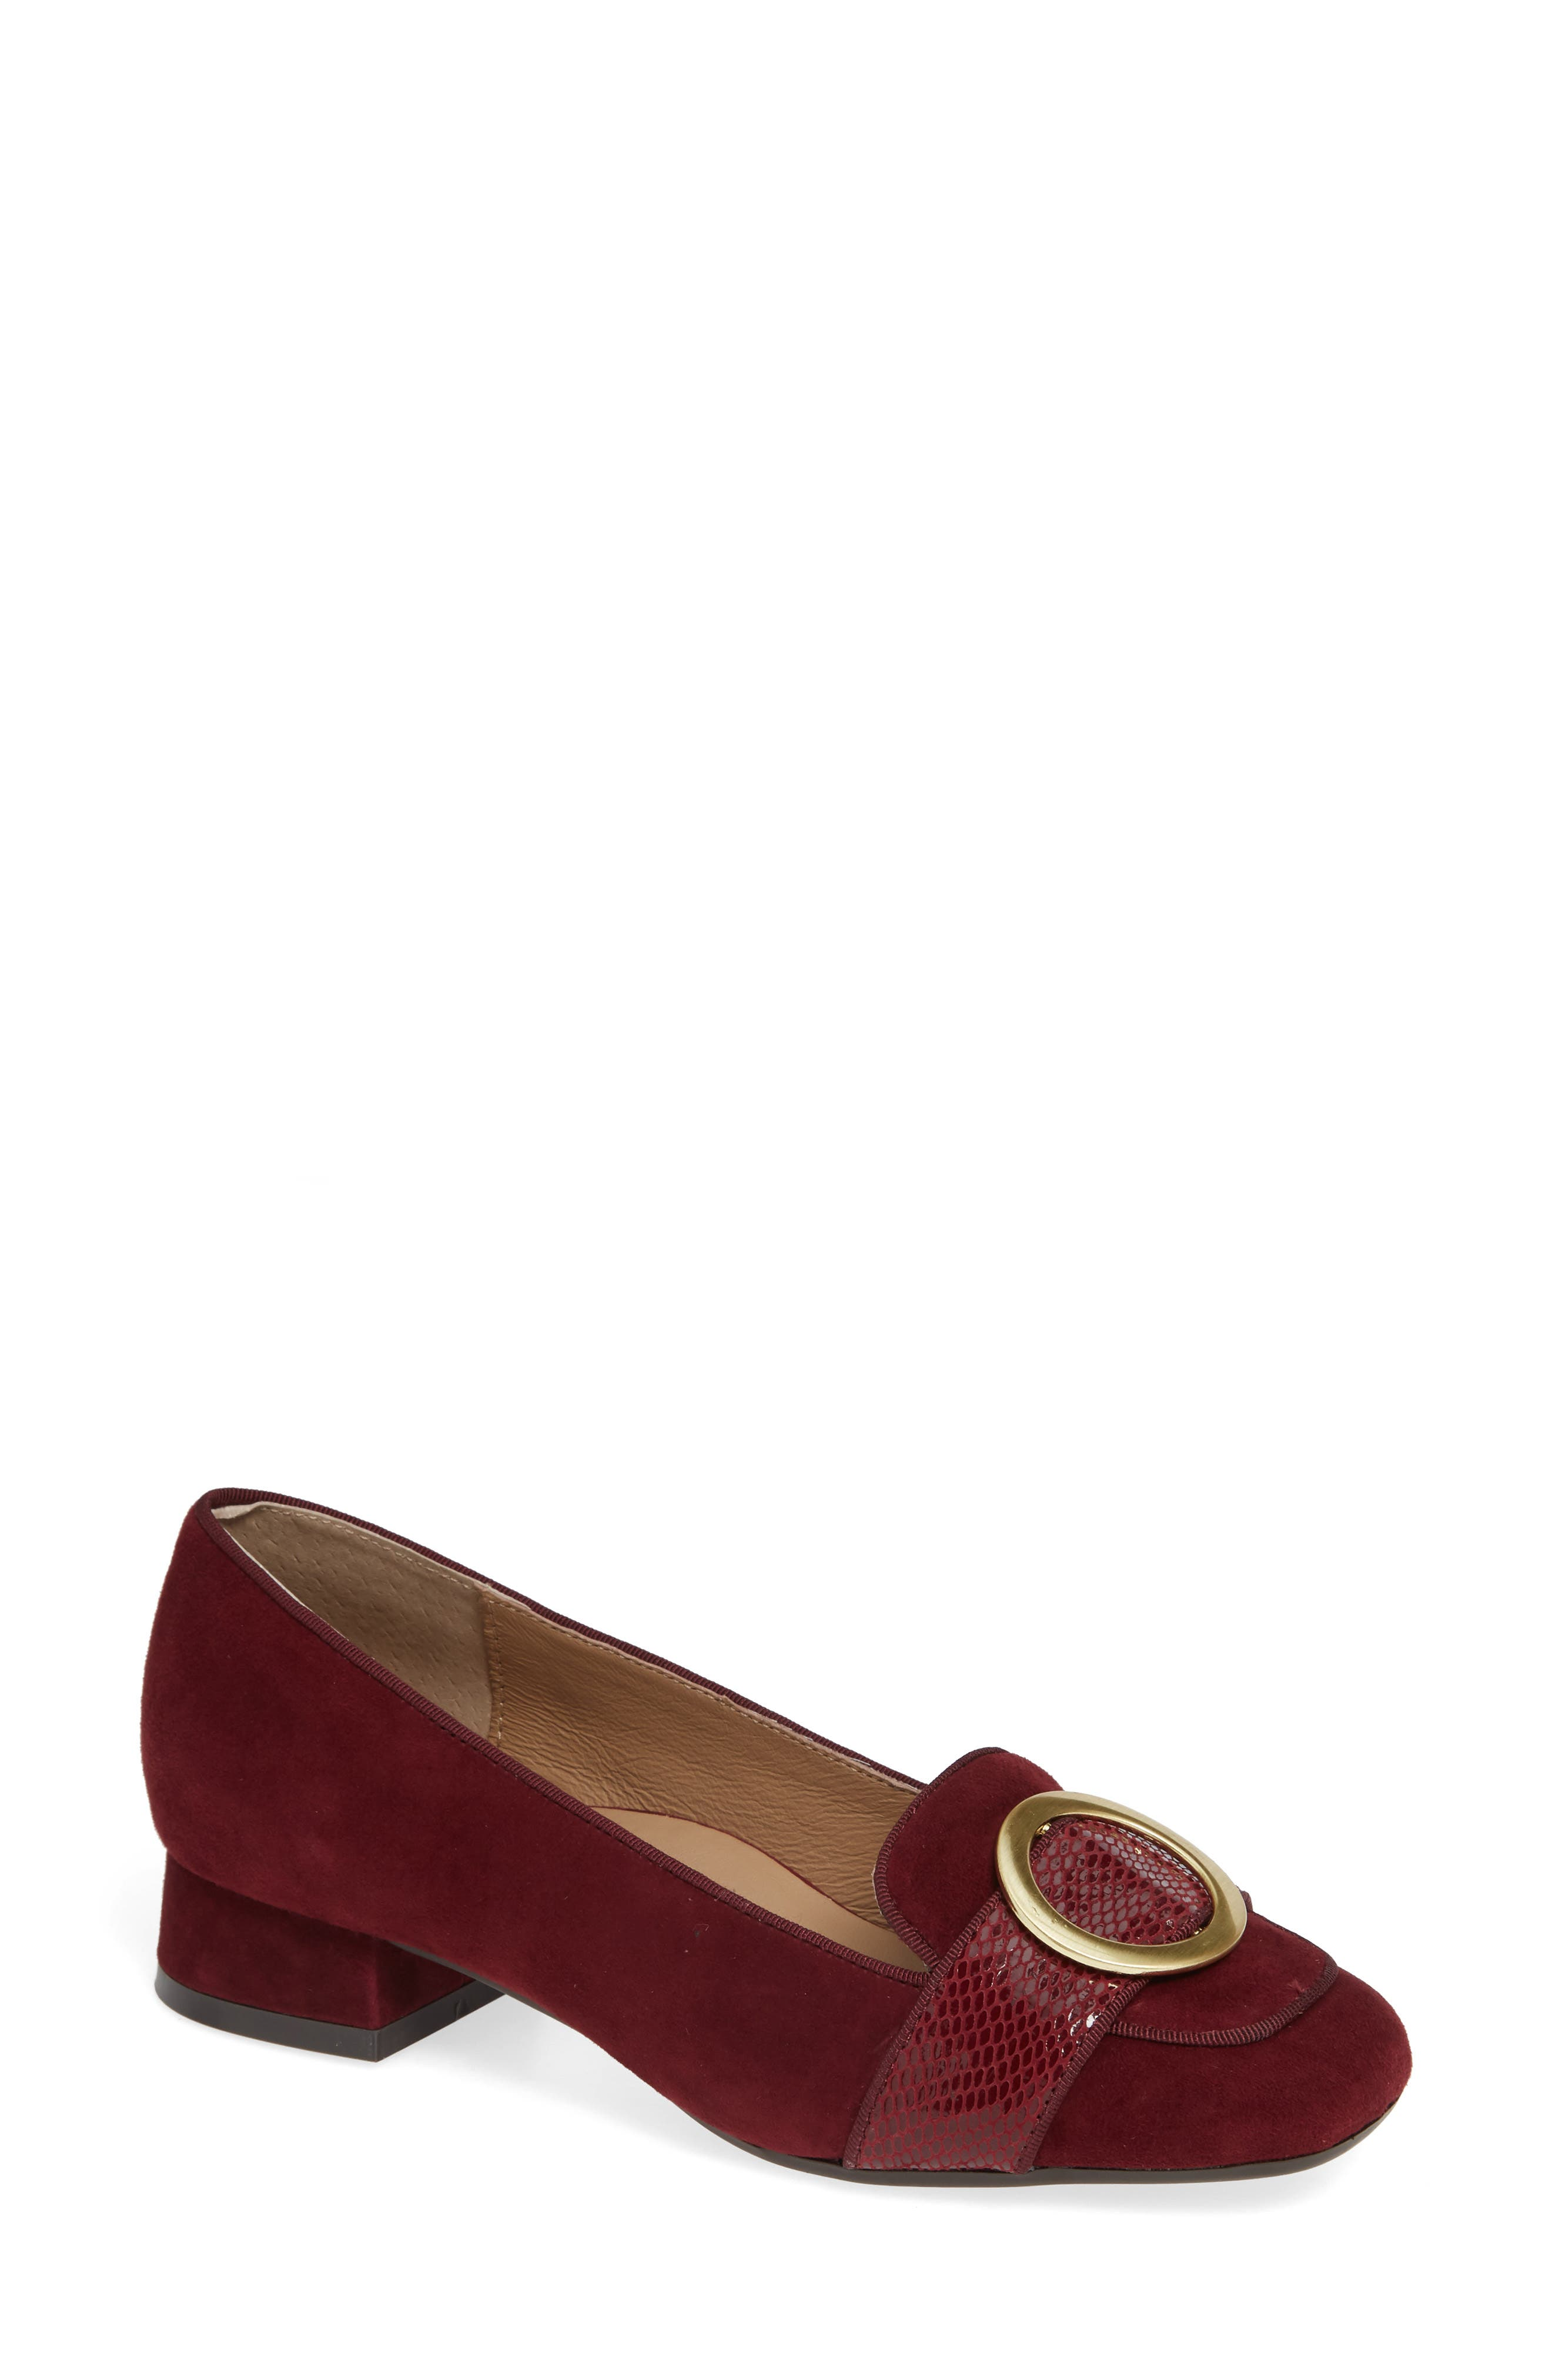 Bettye Muller Concepts Garbo Loafer, Burgundy